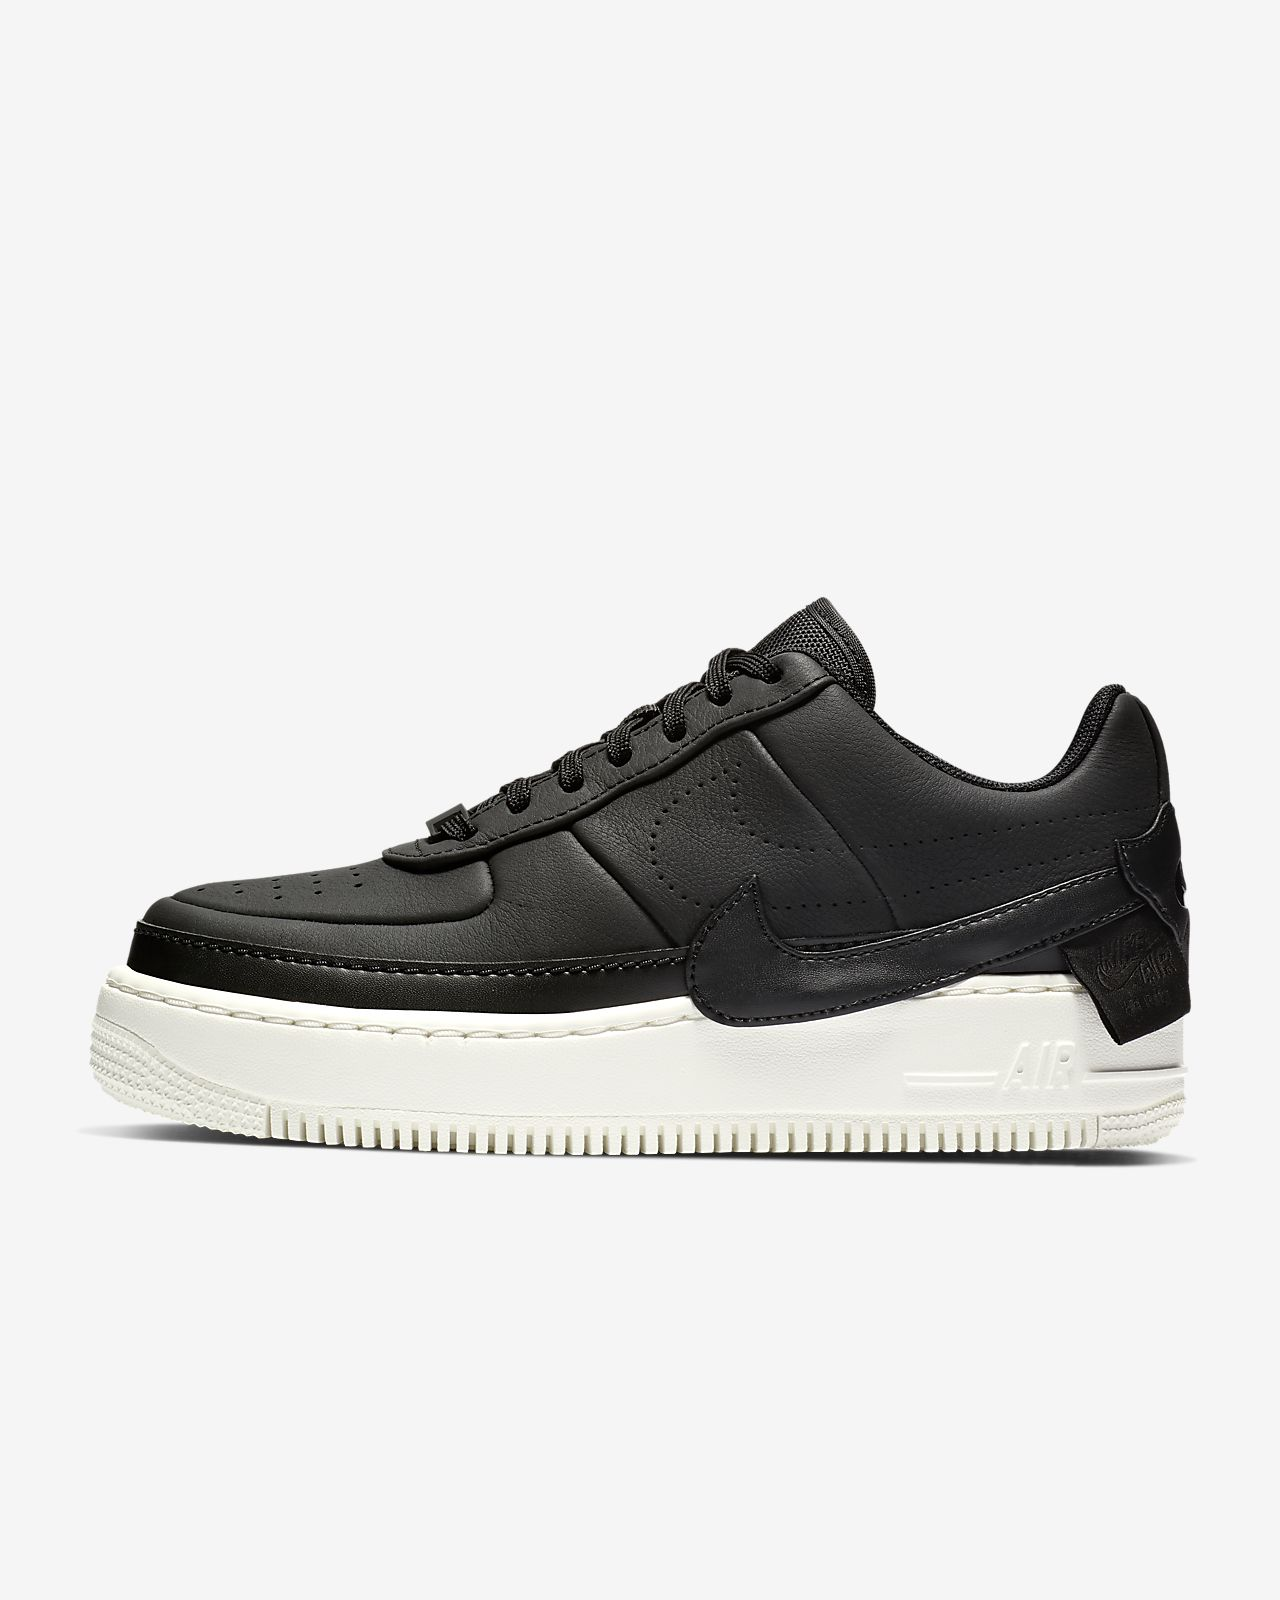 42820be7f1 Nike Air Force 1 Jester XX Premium Women's Shoe. Nike.com SK